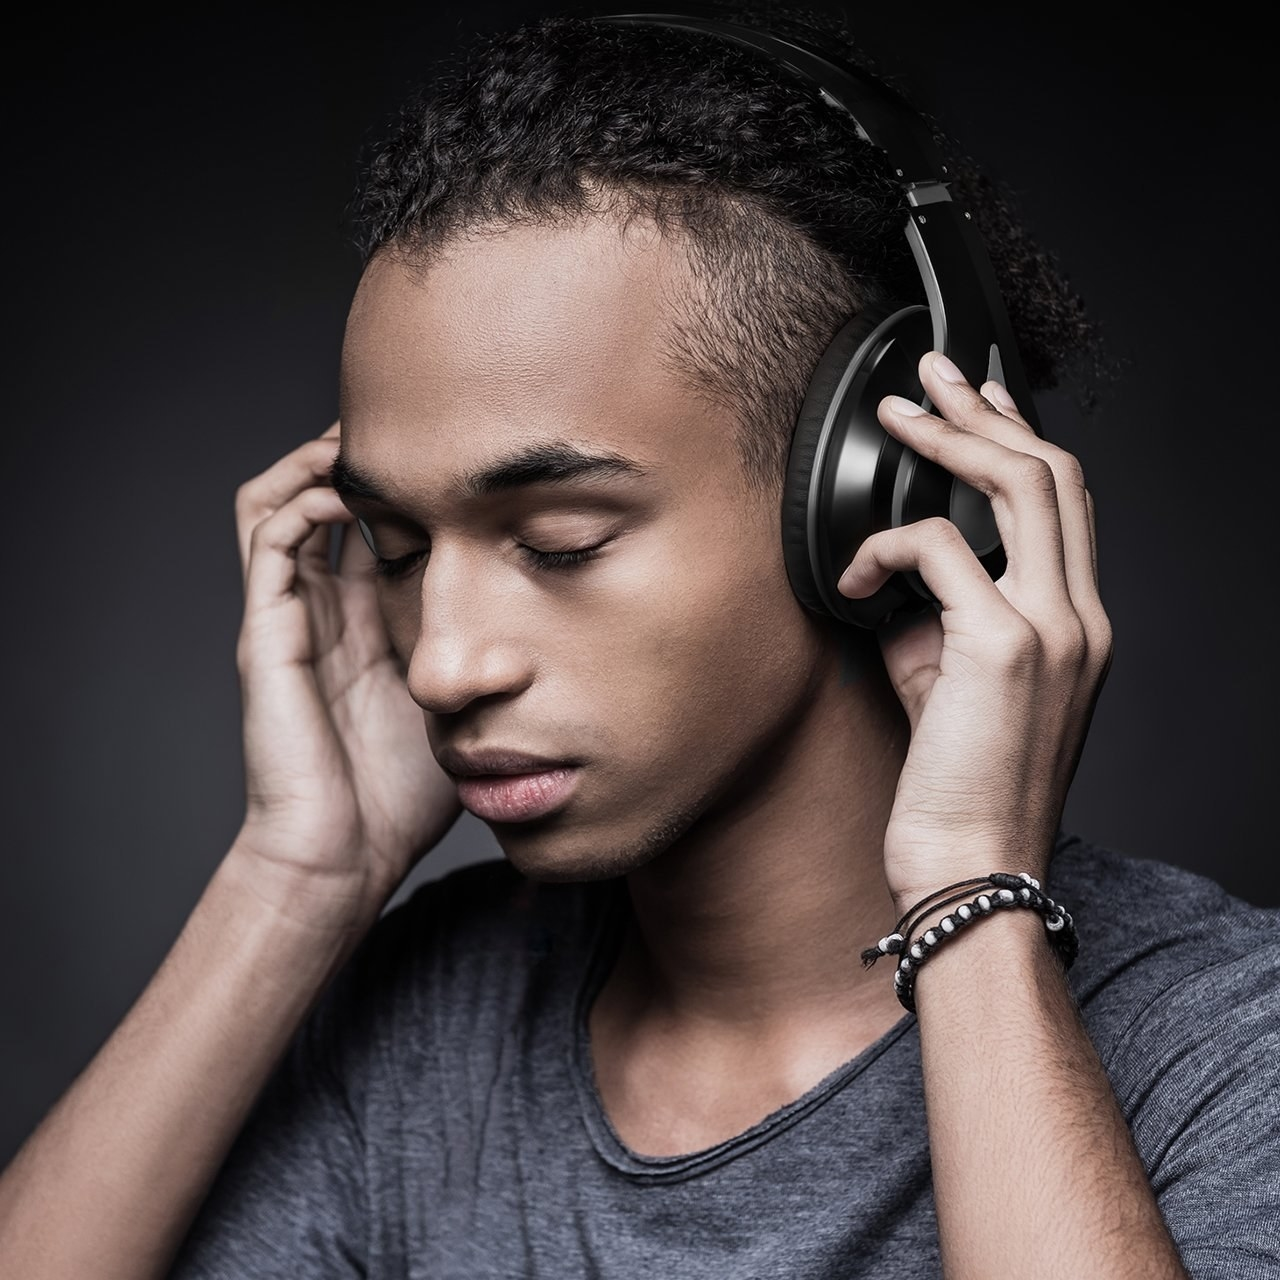 A model putting the headphones on over their ears